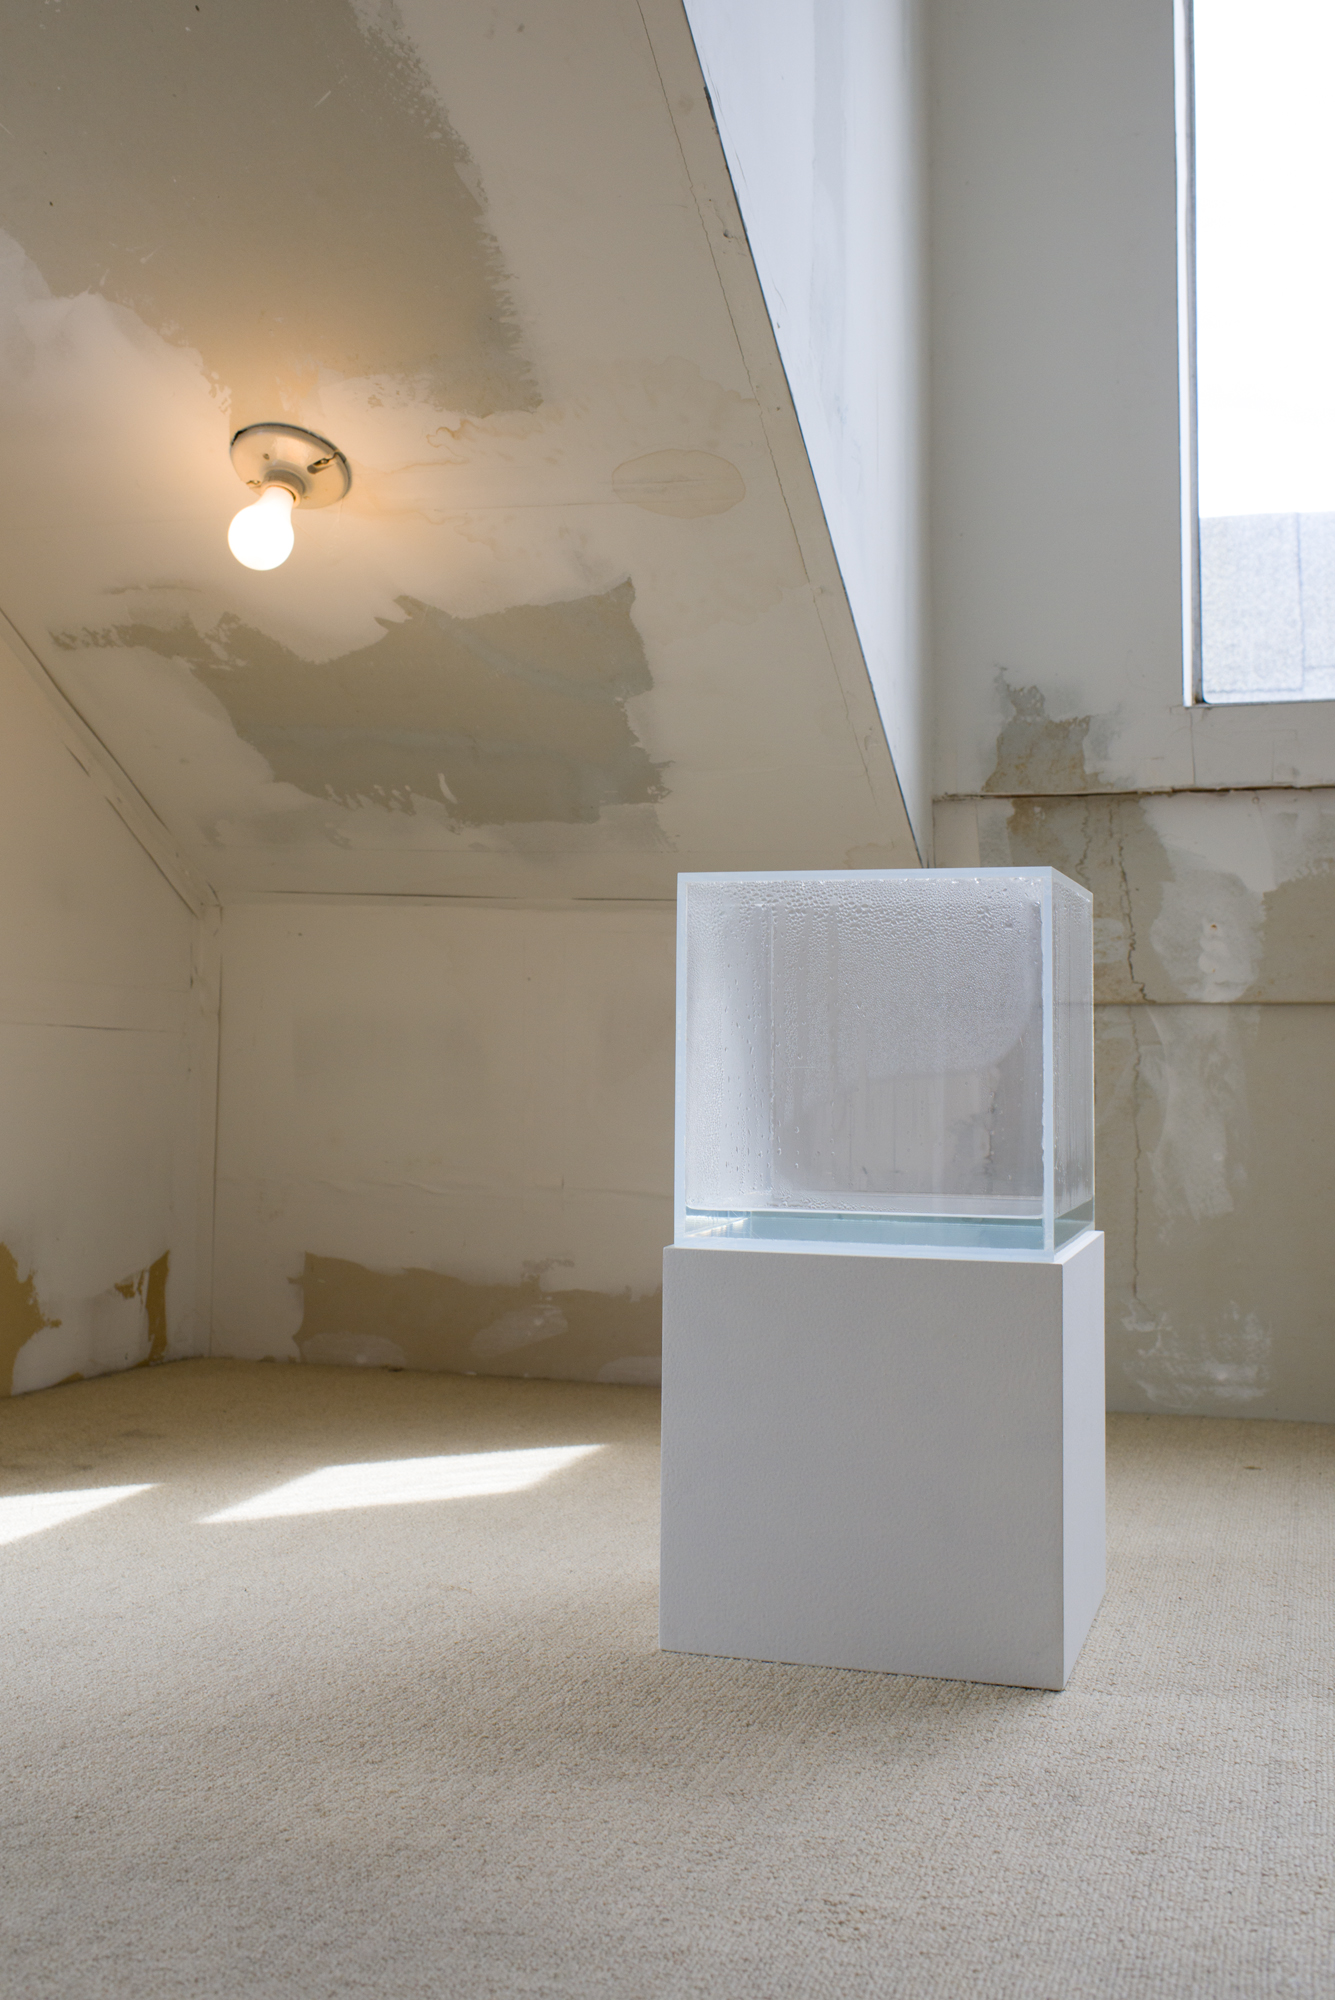 Hans Haacke,  Condensation Cube , 1971. Clear acrylic, distilled water, climate in area of display, 10 x 10 x 10 inches. Courtesy of the artist and Paula Cooper Gallery, New York. Private collection, San Francisco; Photo: Preston/Kalogiros; Courtesy of The 500 Capp Street Foundation.